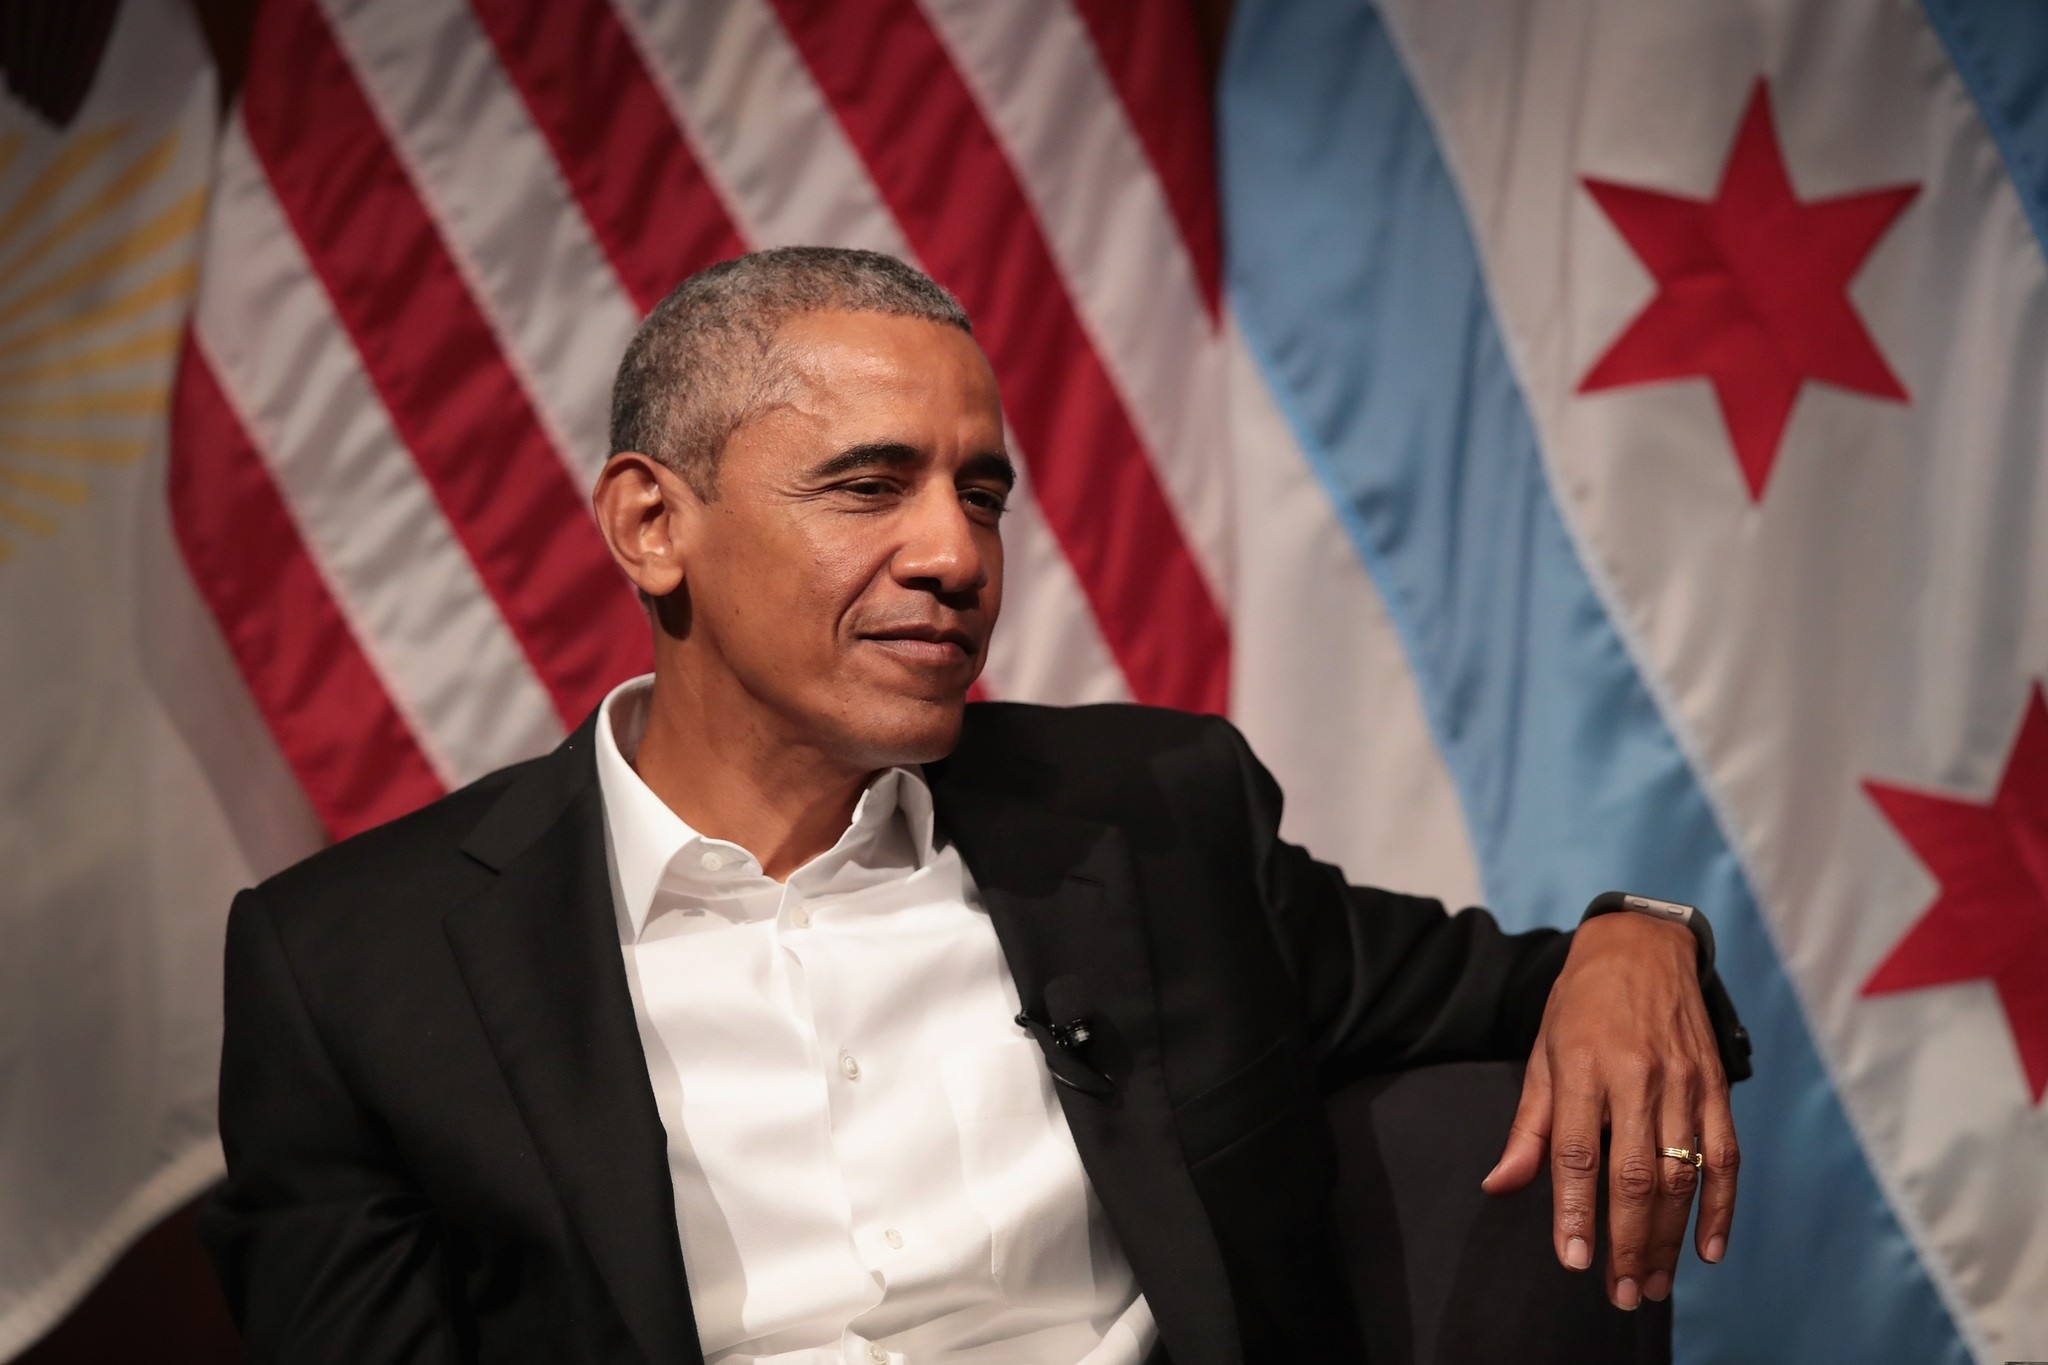 This file photo taken on April 23, 2017 shows former President Obama visiting with youth leaders at the University of Chicago to help promote community organizing in Chicago. (AFP Photo)